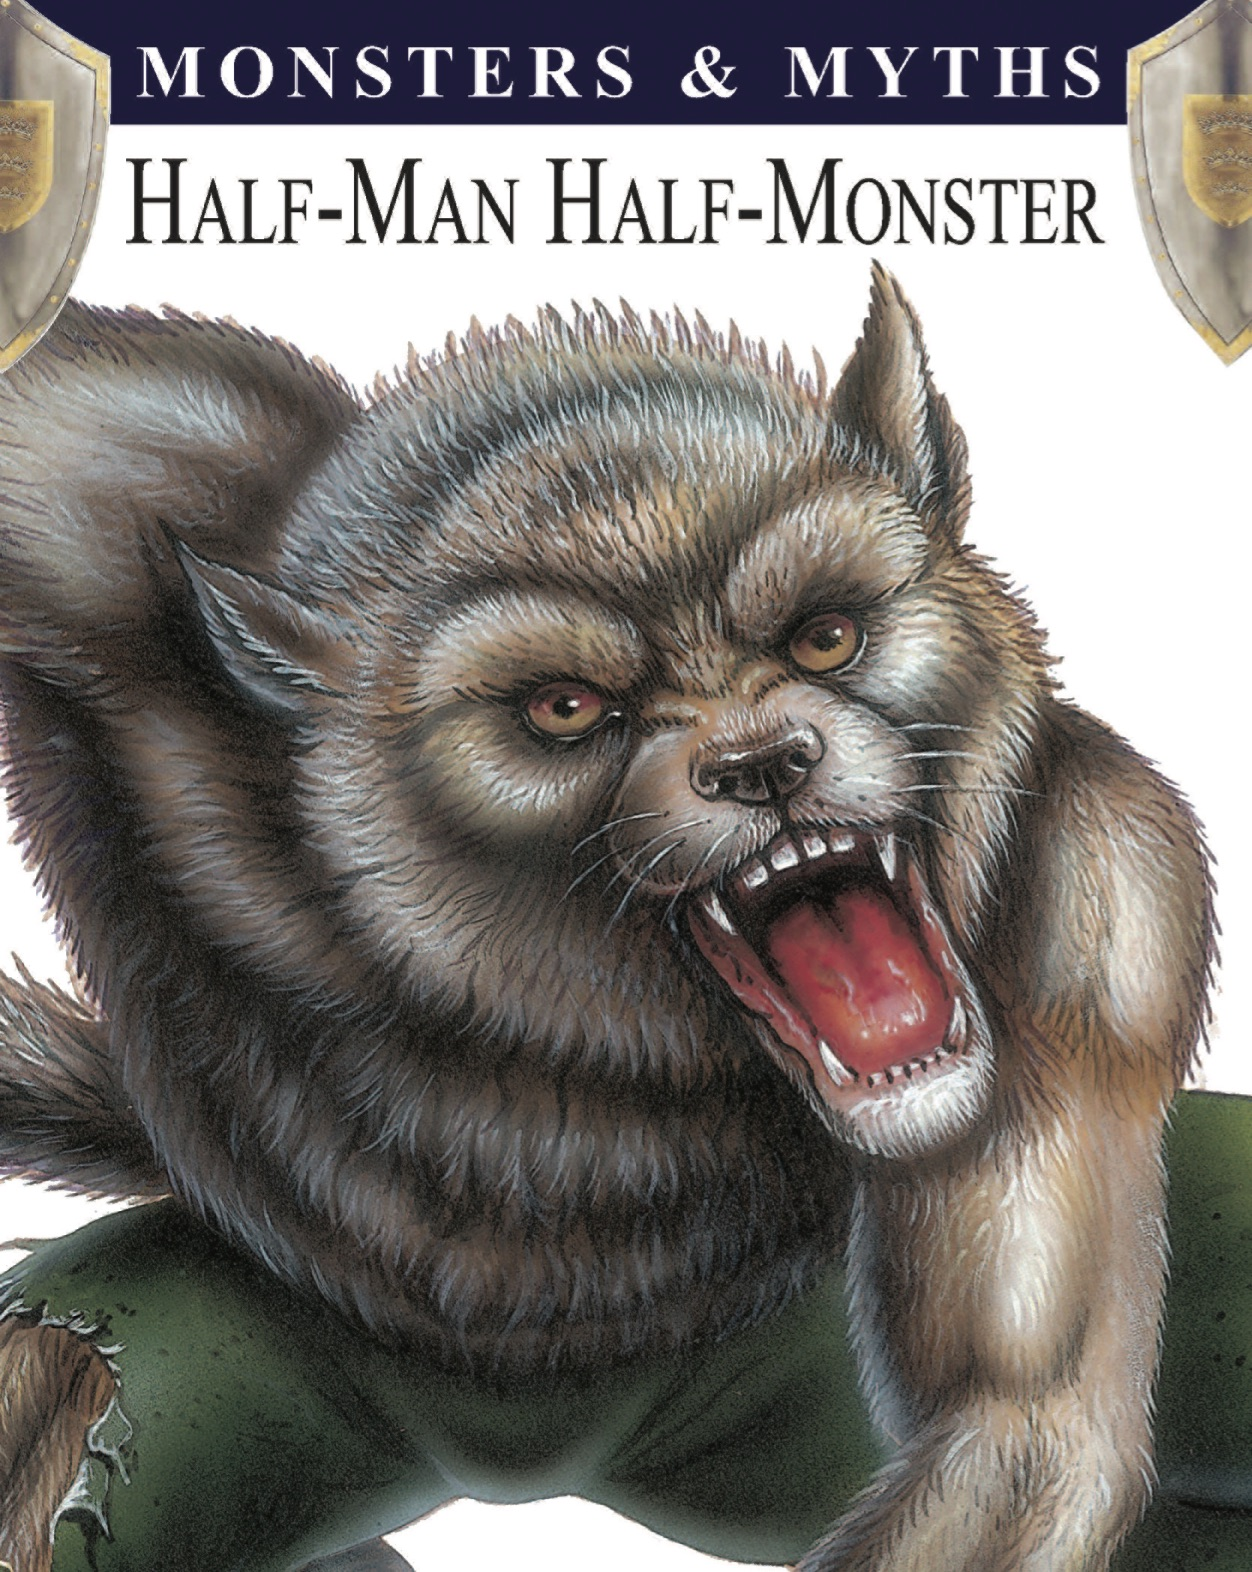 Monsters and Myths: Half-Man Half-Monster